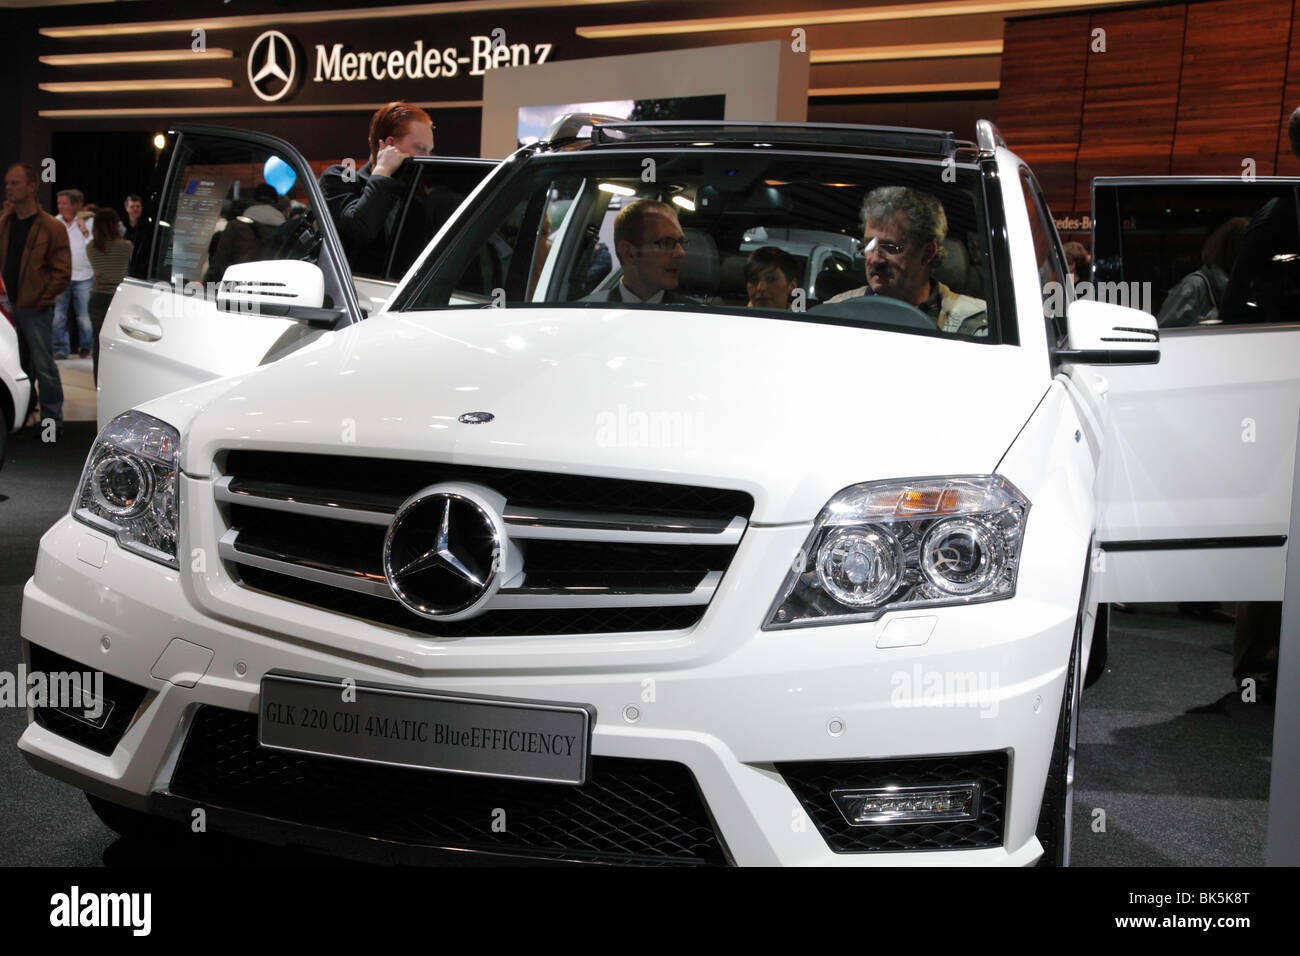 mercedes glk 220 cdi 4matic blueefficiency at the auto. Black Bedroom Furniture Sets. Home Design Ideas